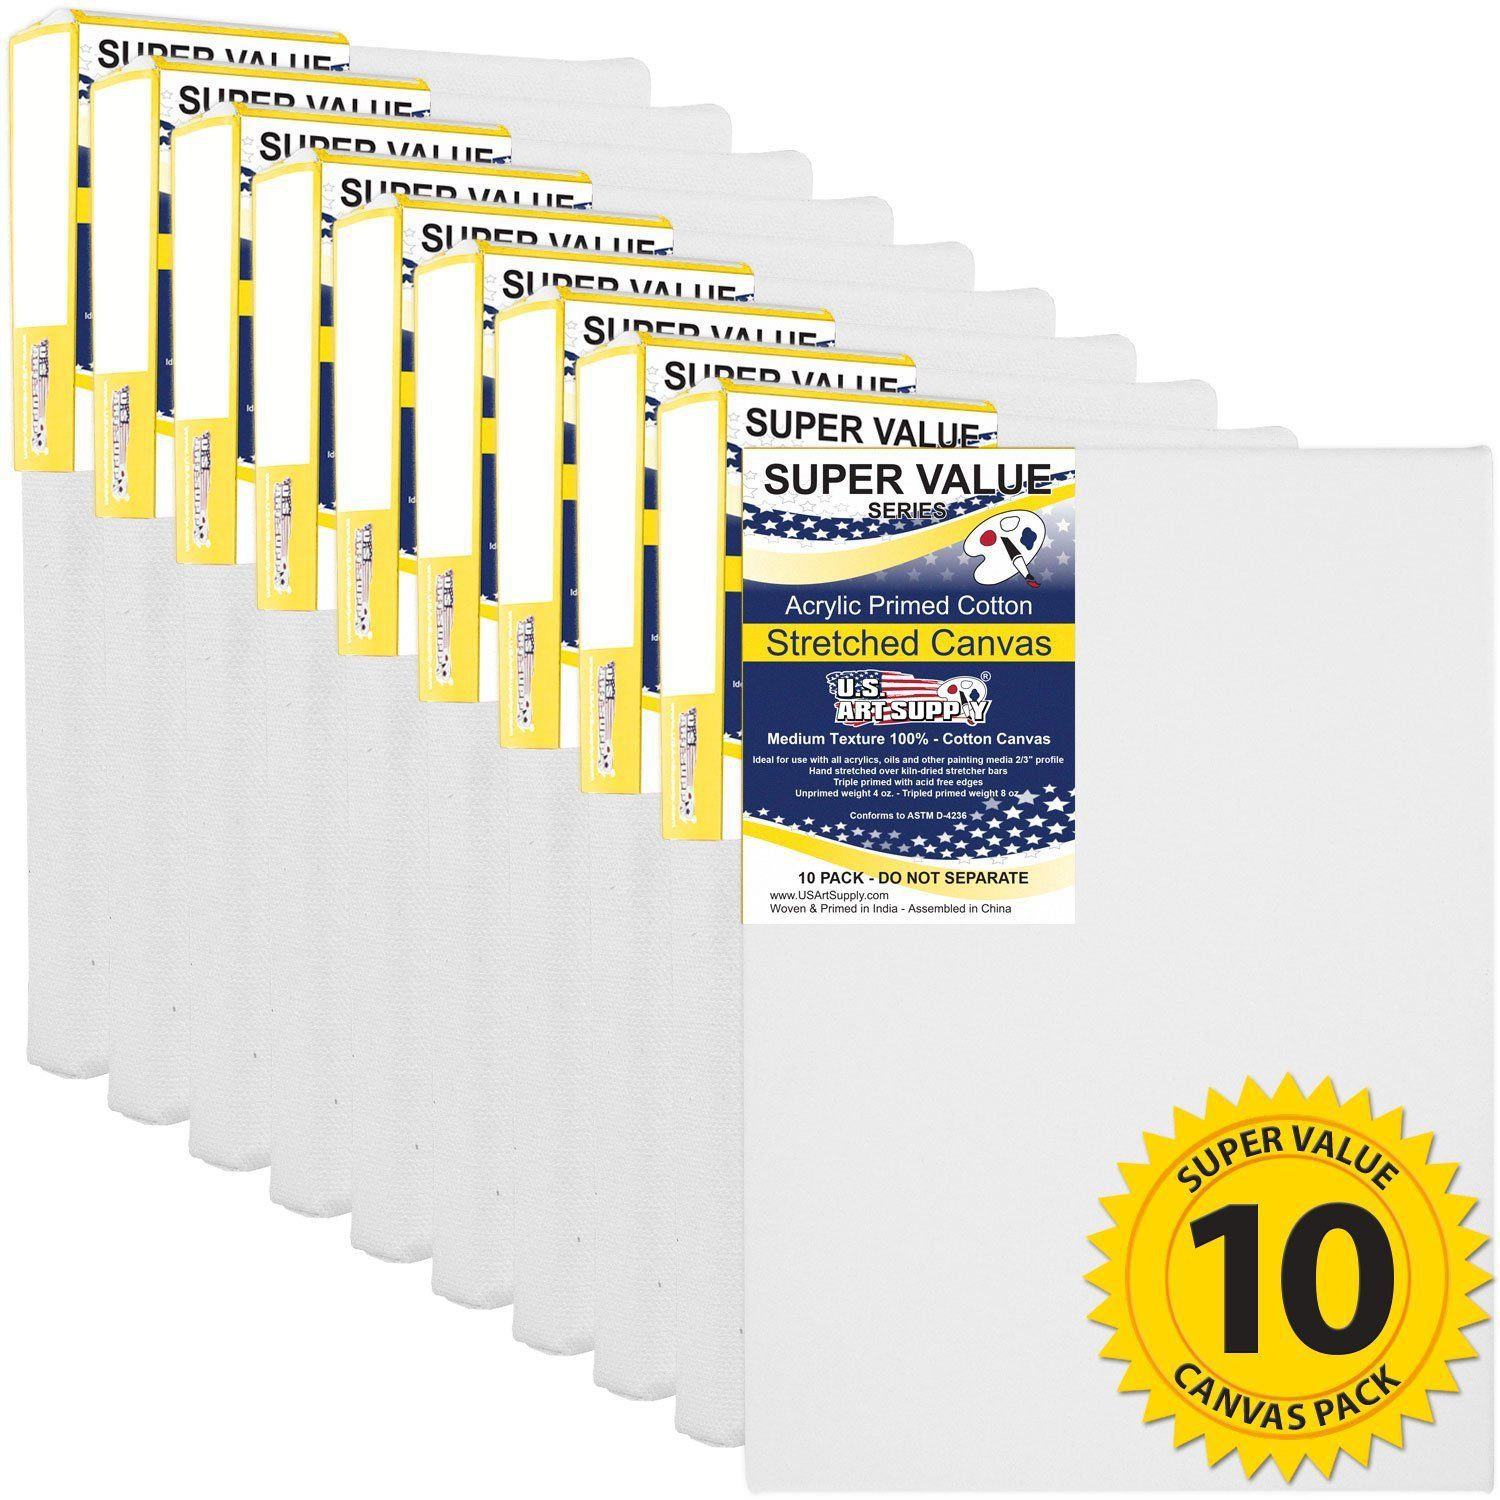 Super value pack of 10 canvases for only 1596 stretch